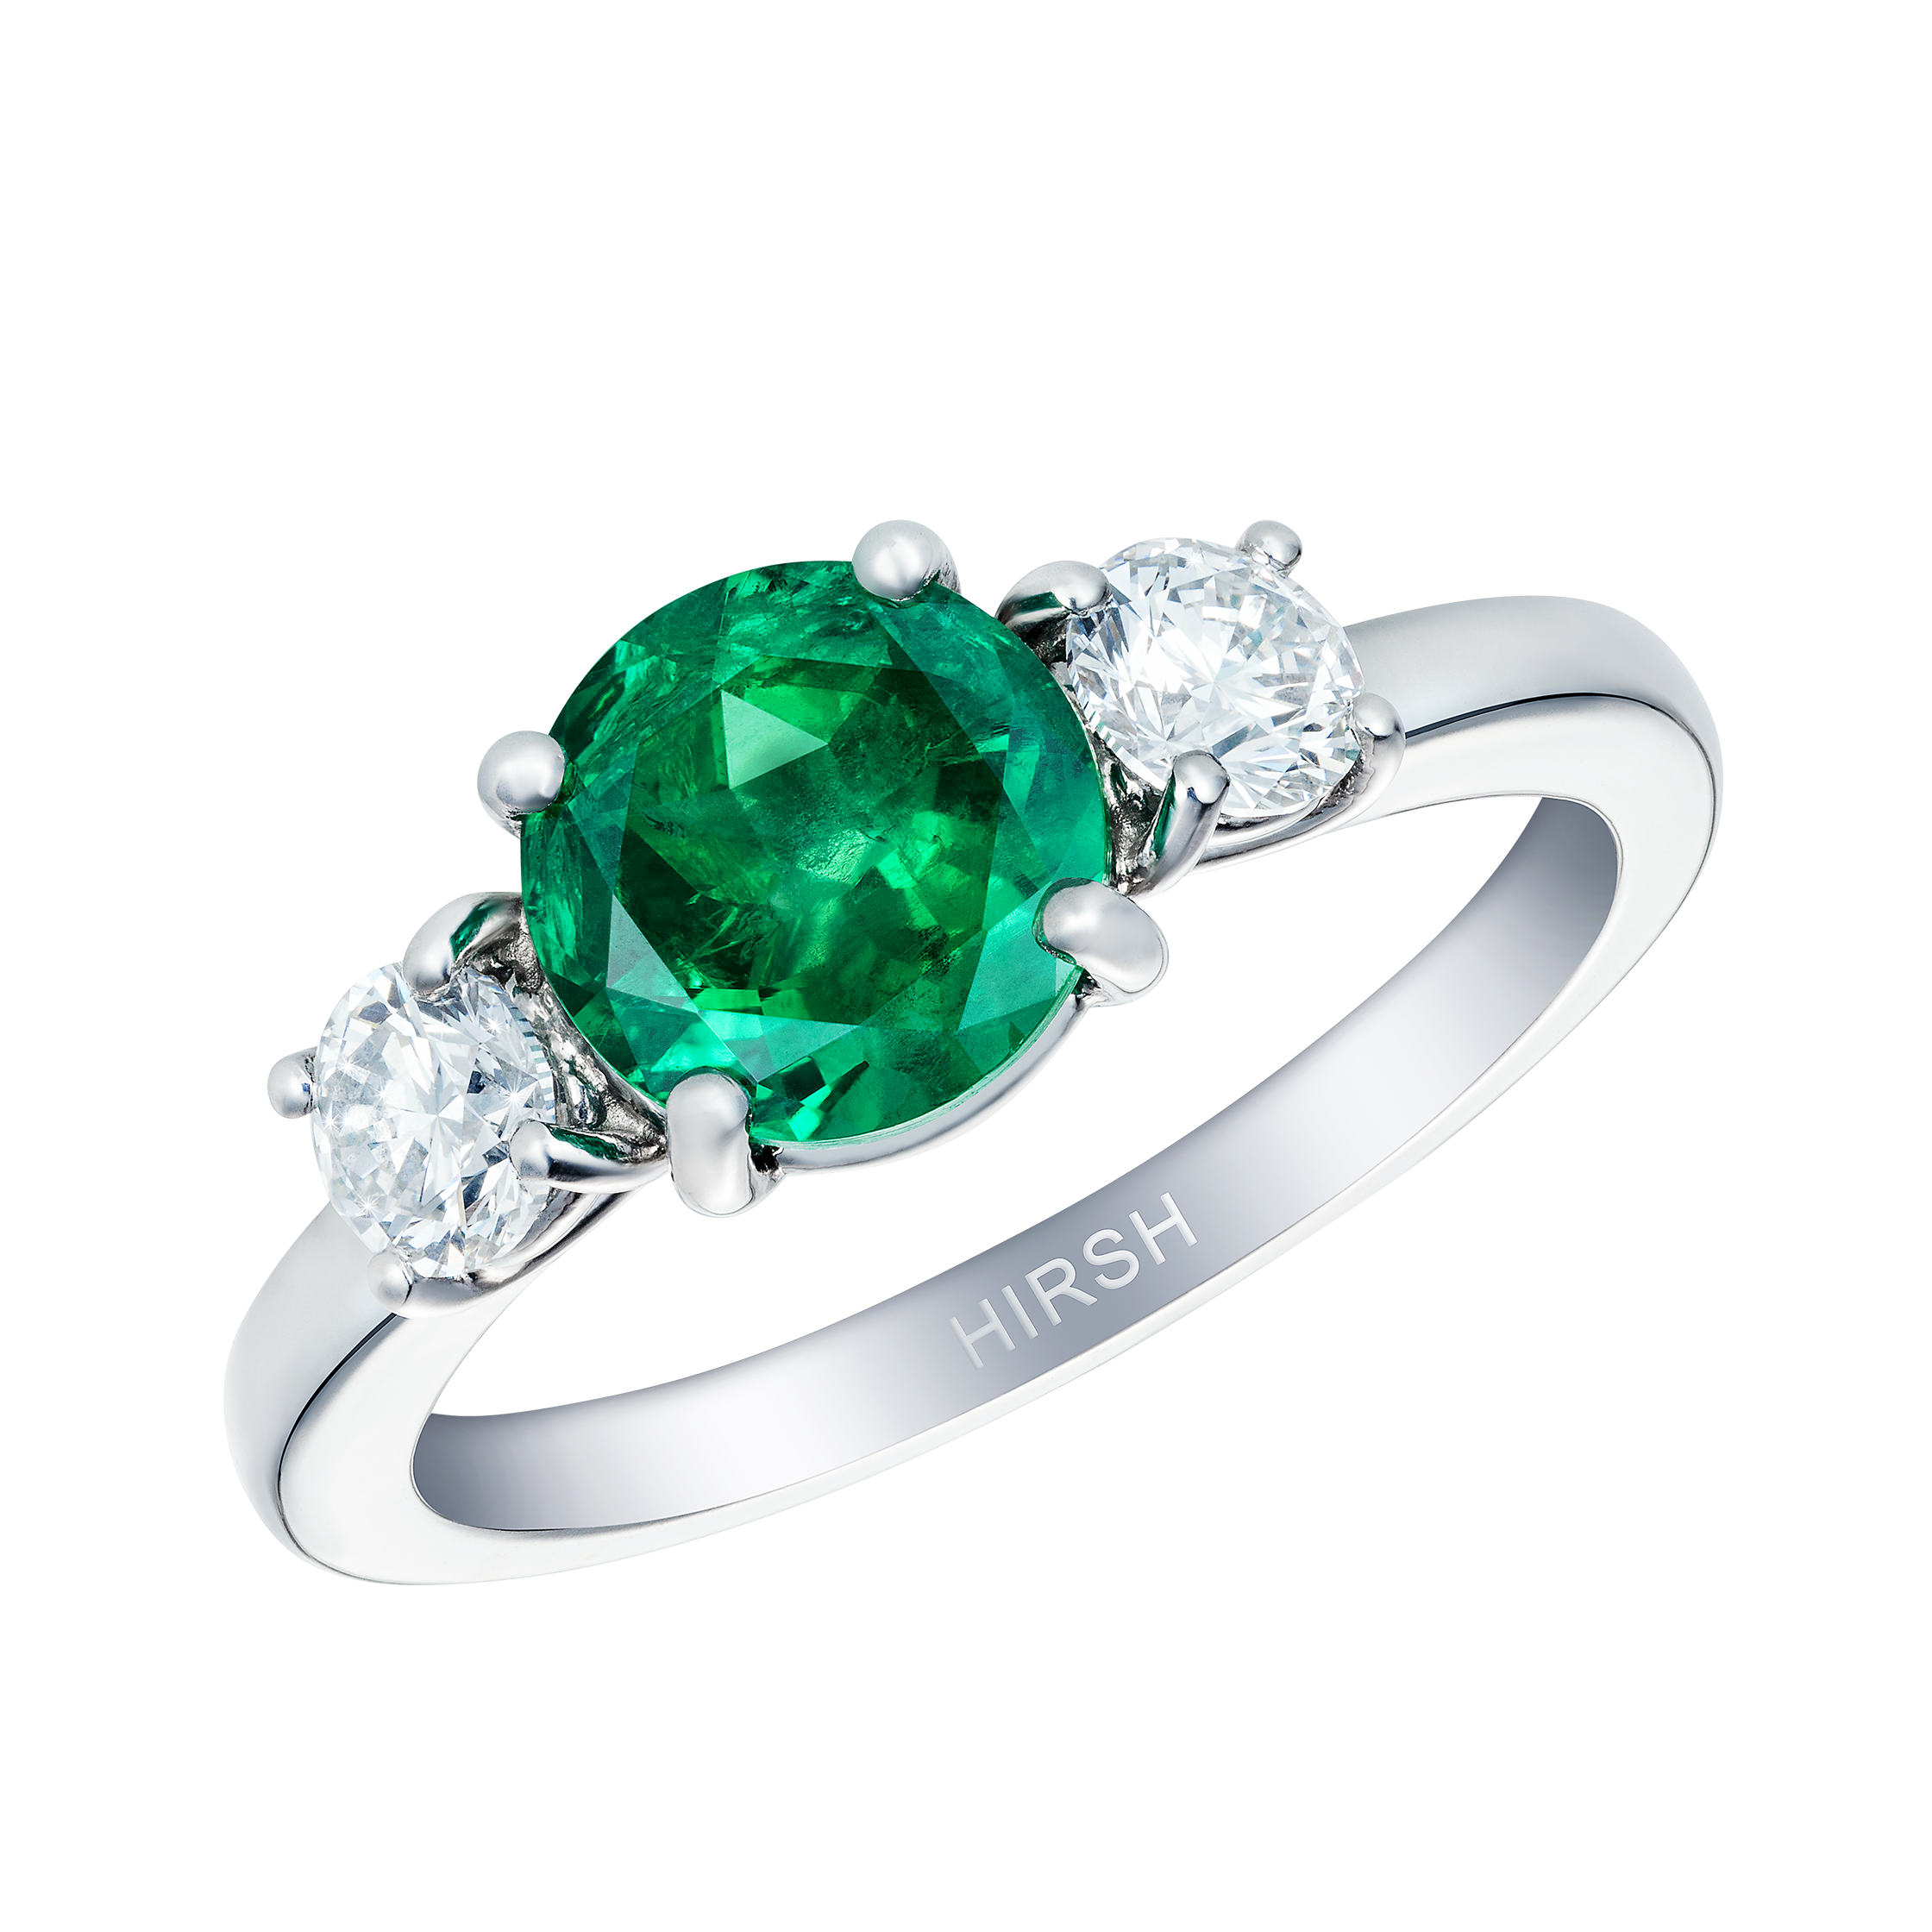 emerald blog ritani for engagement classic com rings diamond band top buying ring with an cut tips wedding diamonds